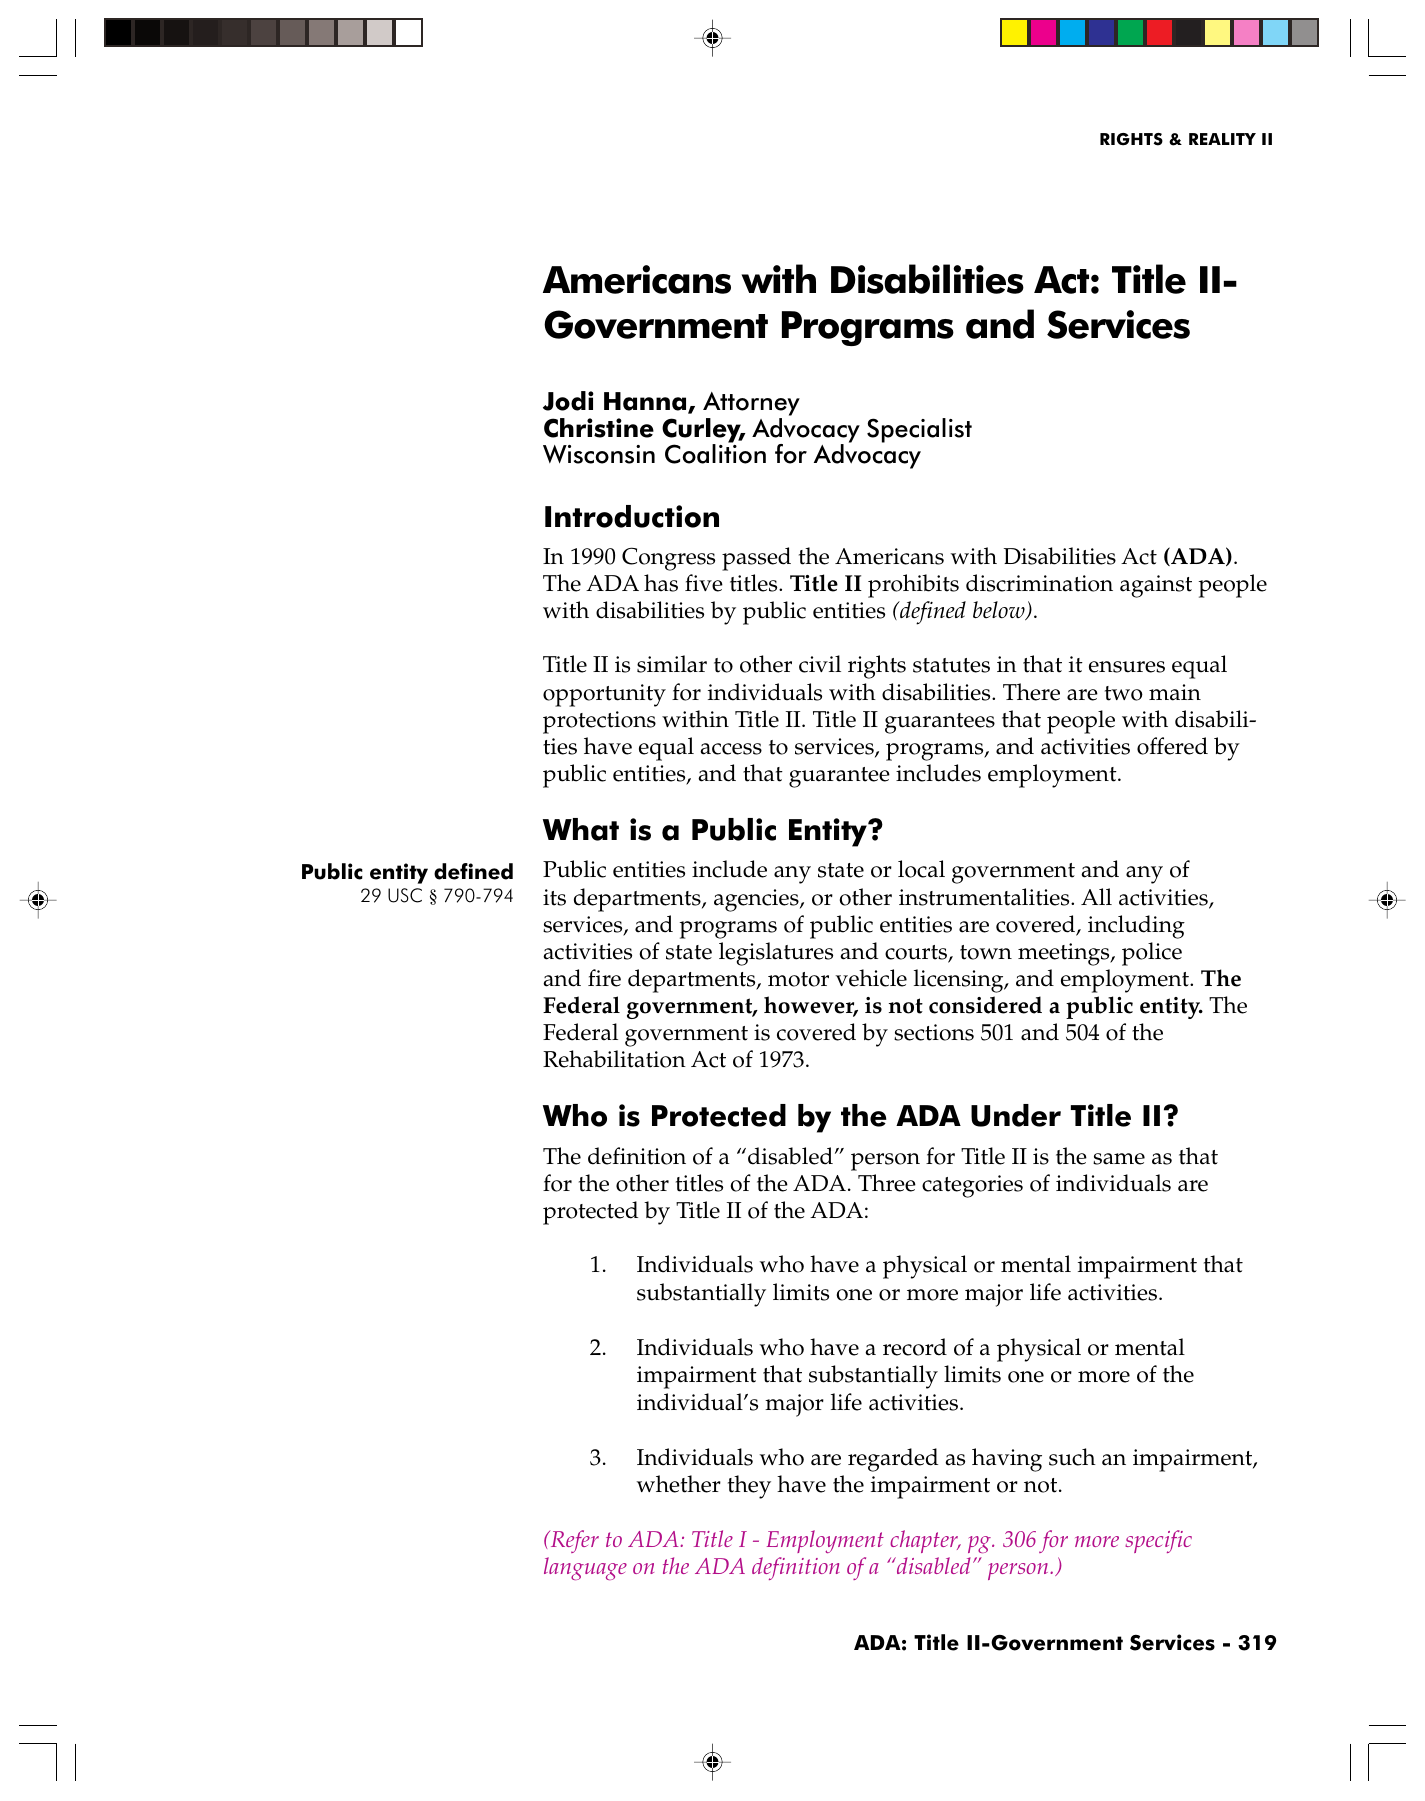 americans with disabilities act: title ii